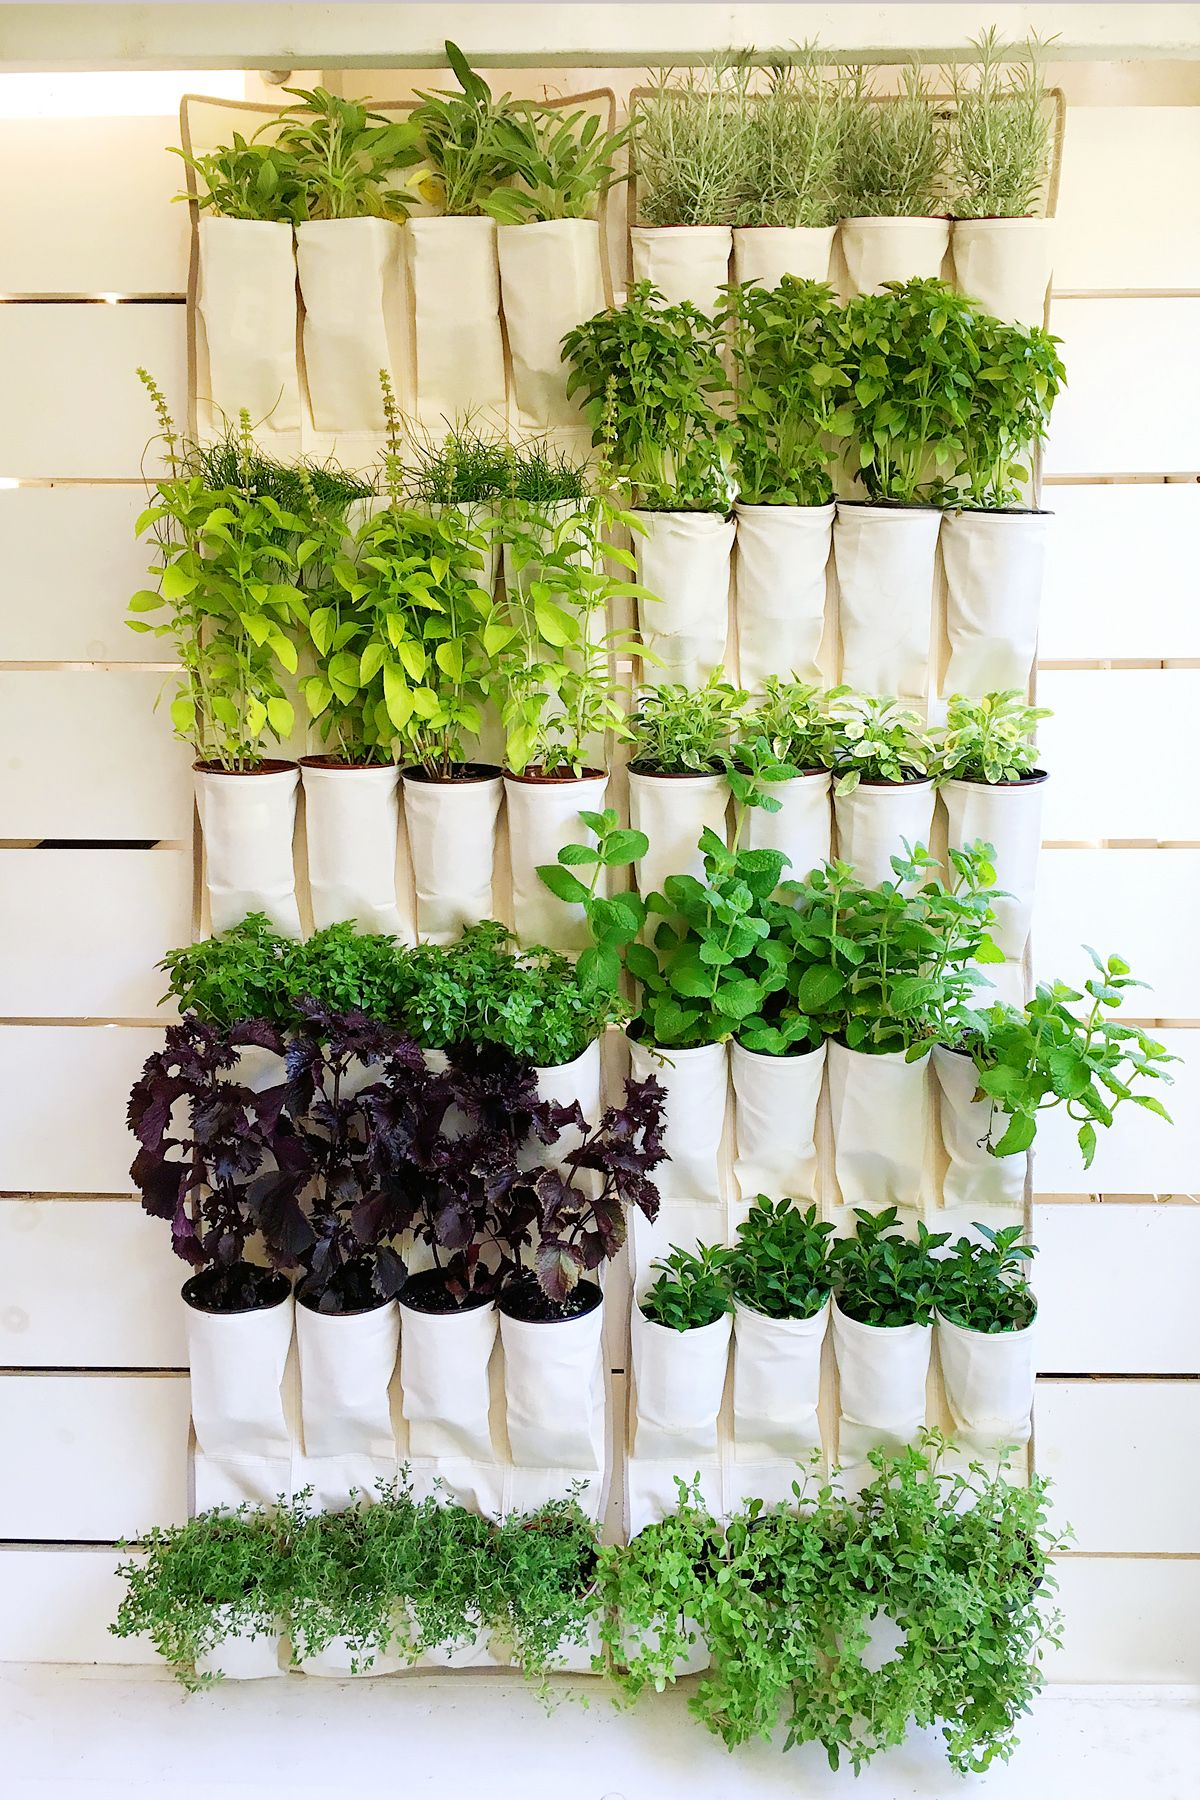 Hanging Indoor Herb Garden A Hanging Canvas Shoe Organizer Repurposed Into A Vertical